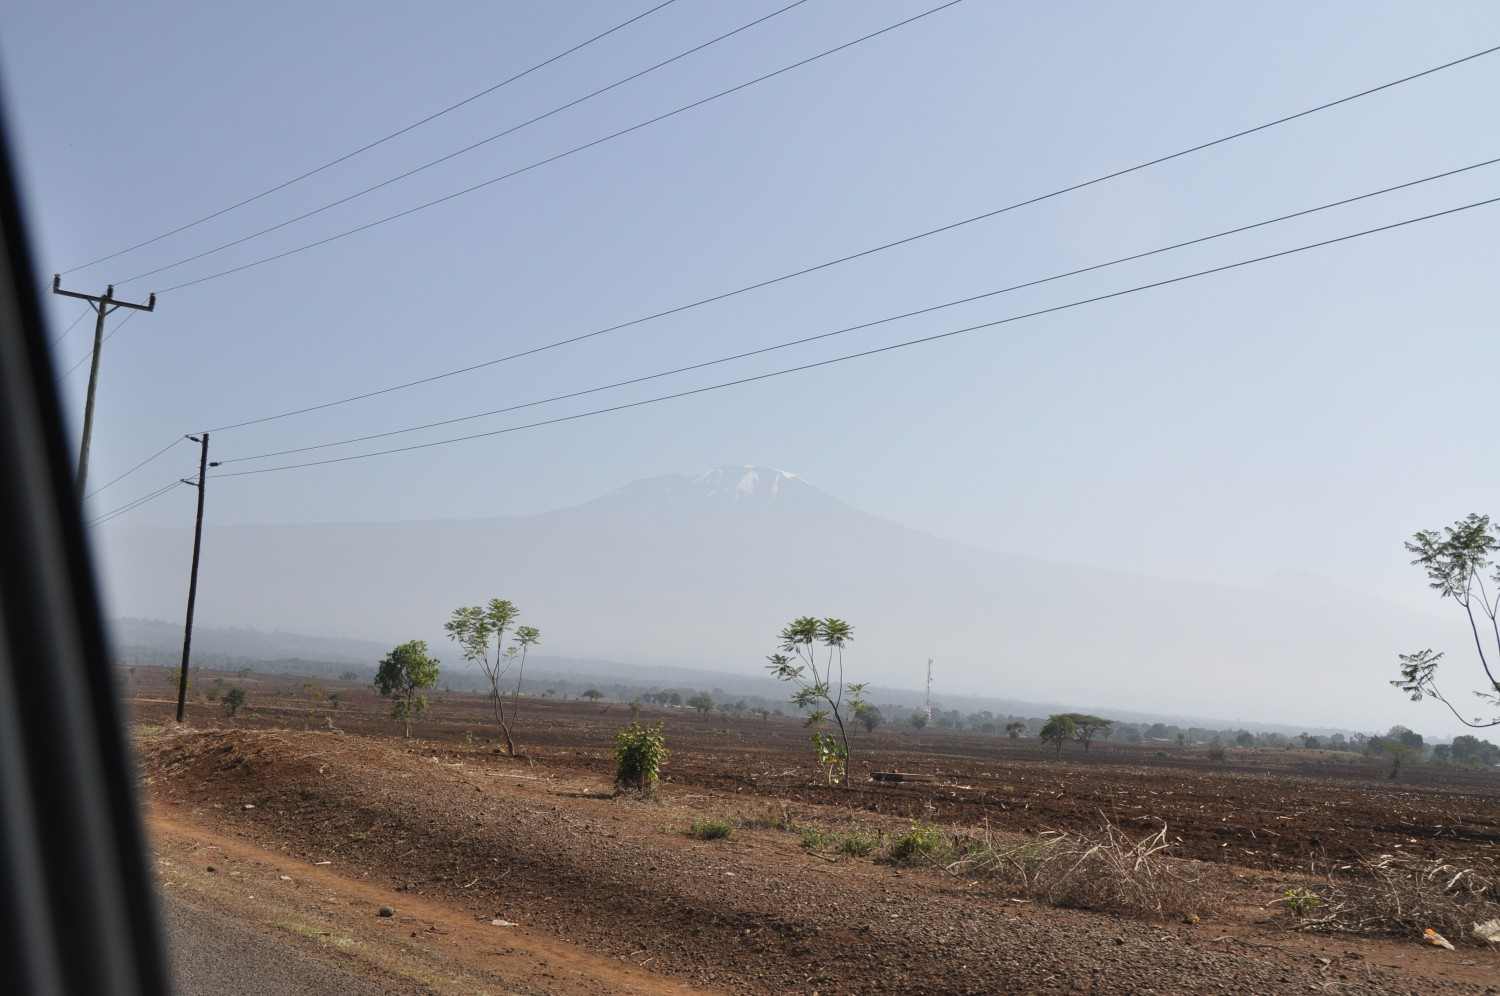 View of the Kilimanjaro from the car